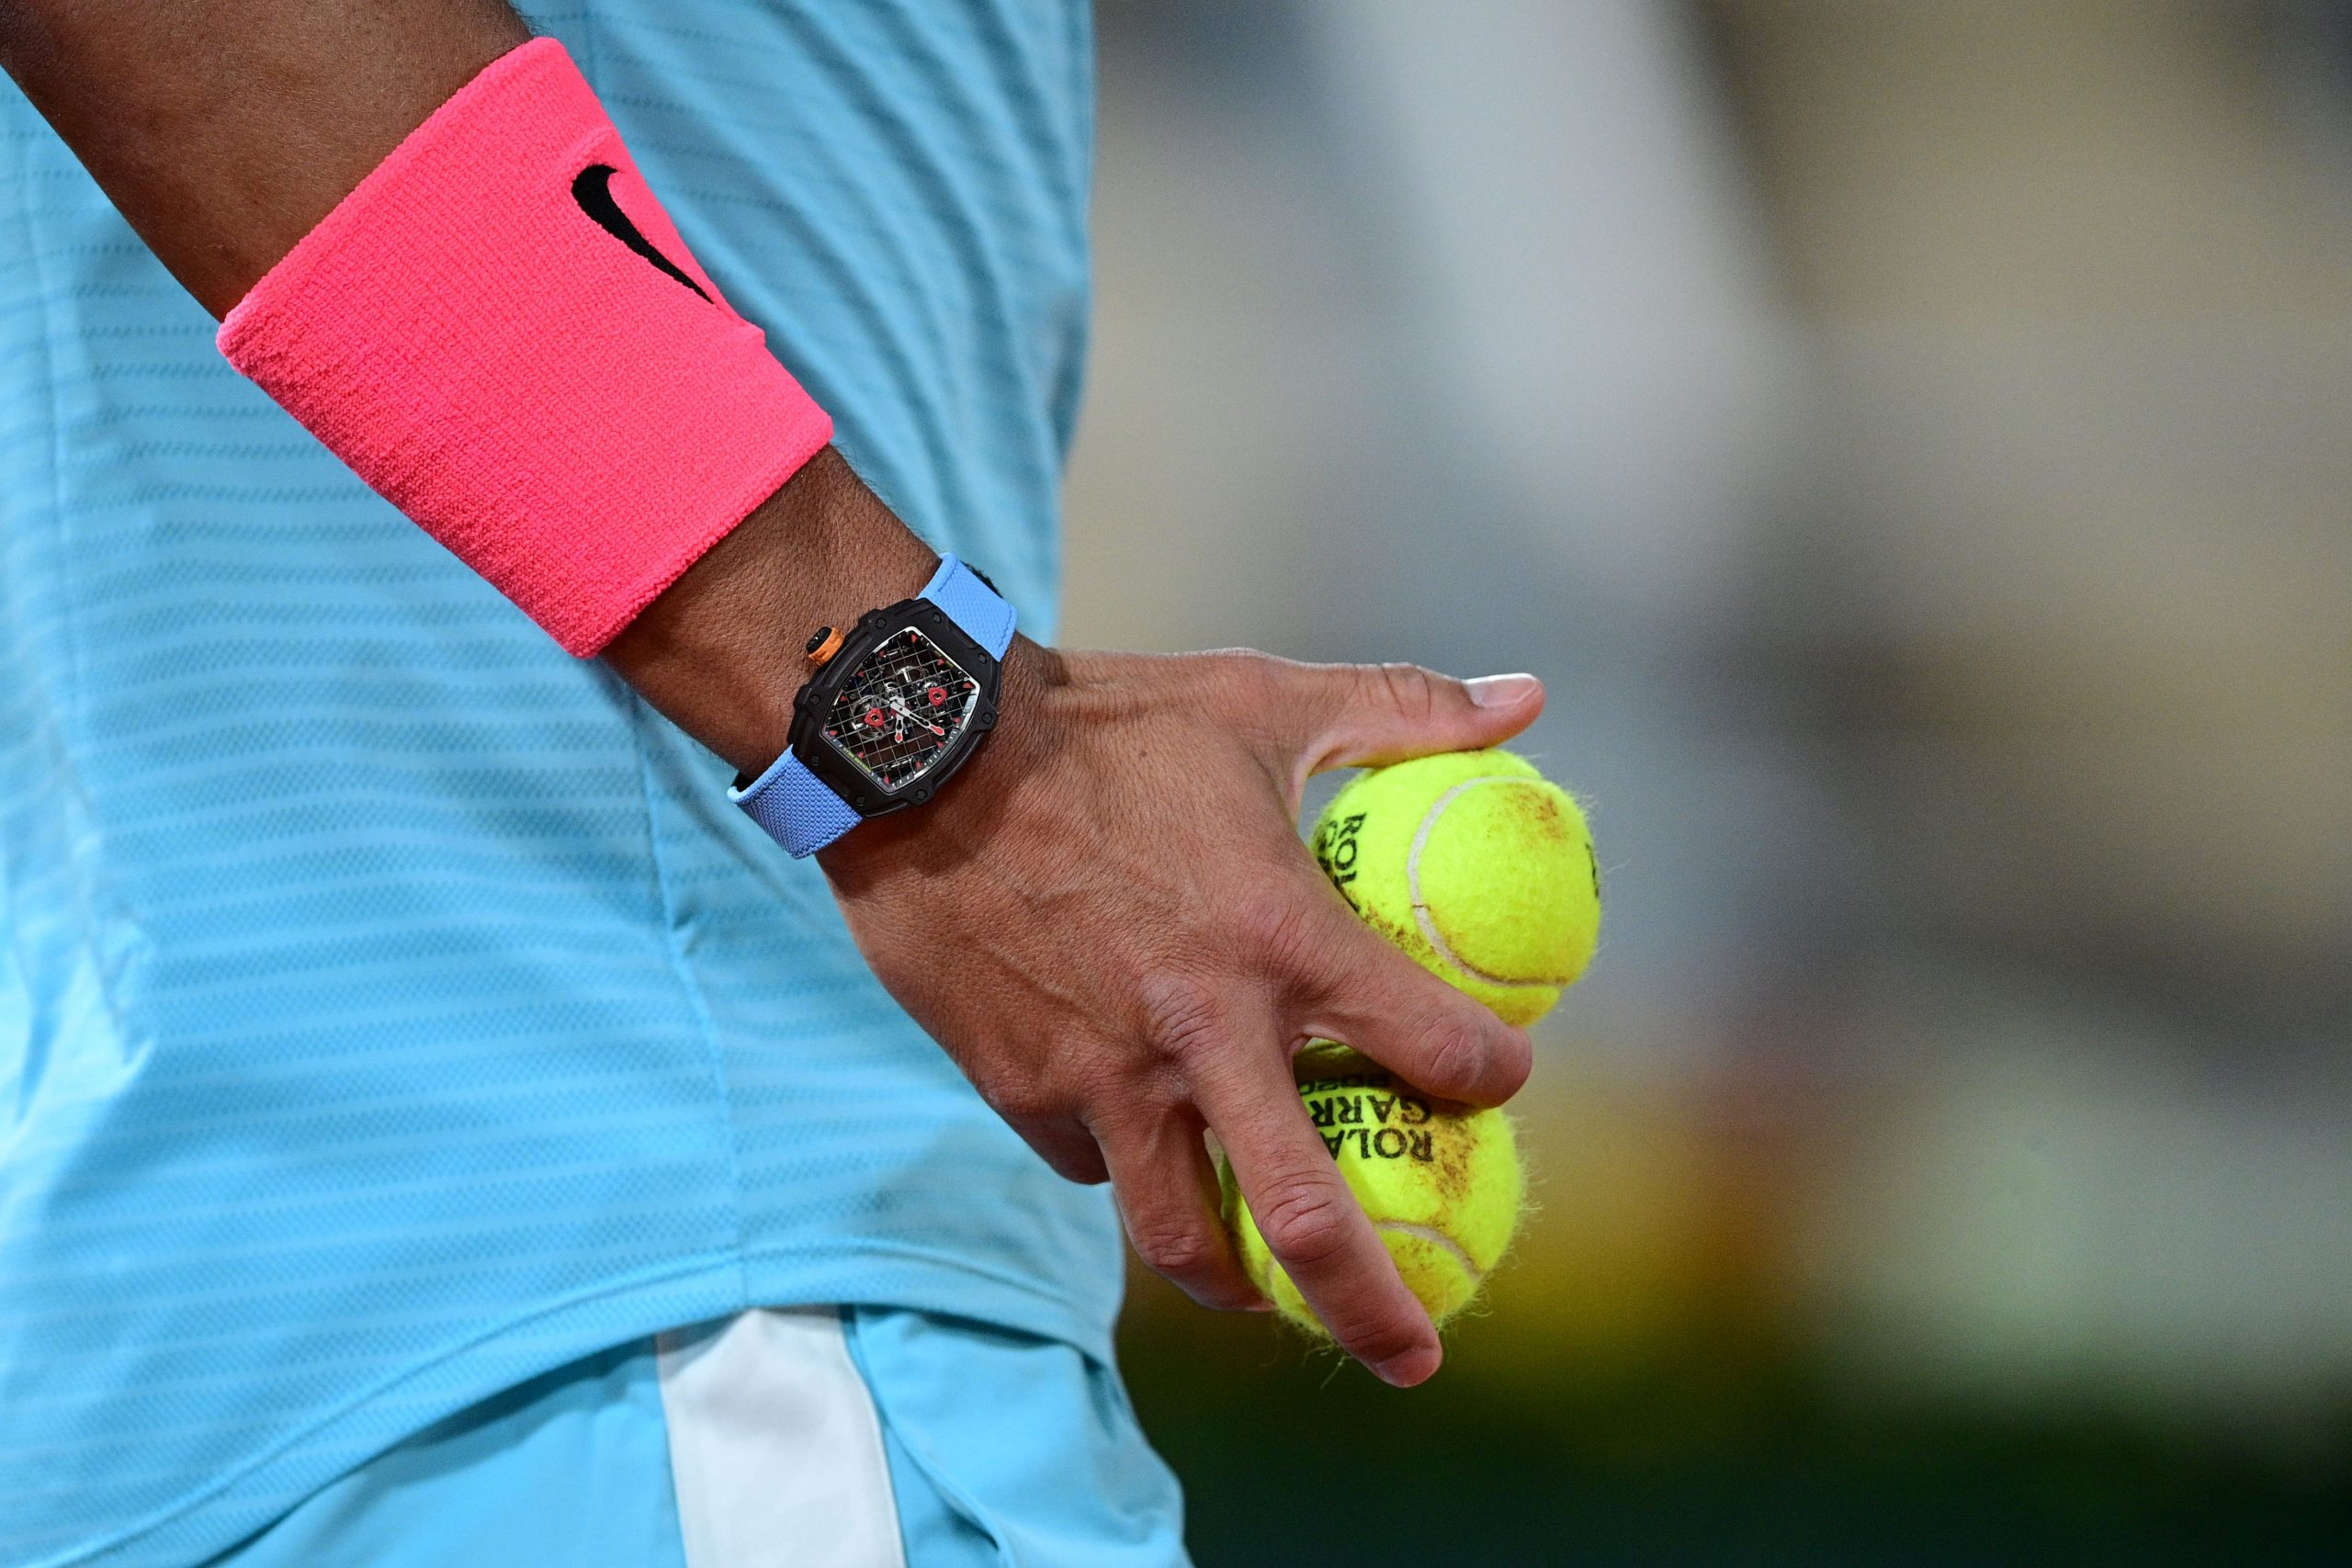 Professional Tennis player Rafael Nadal at the French Open wearing a Richard Mille RM 27-04 Tourbillon Rafael Nadal Limited Edition